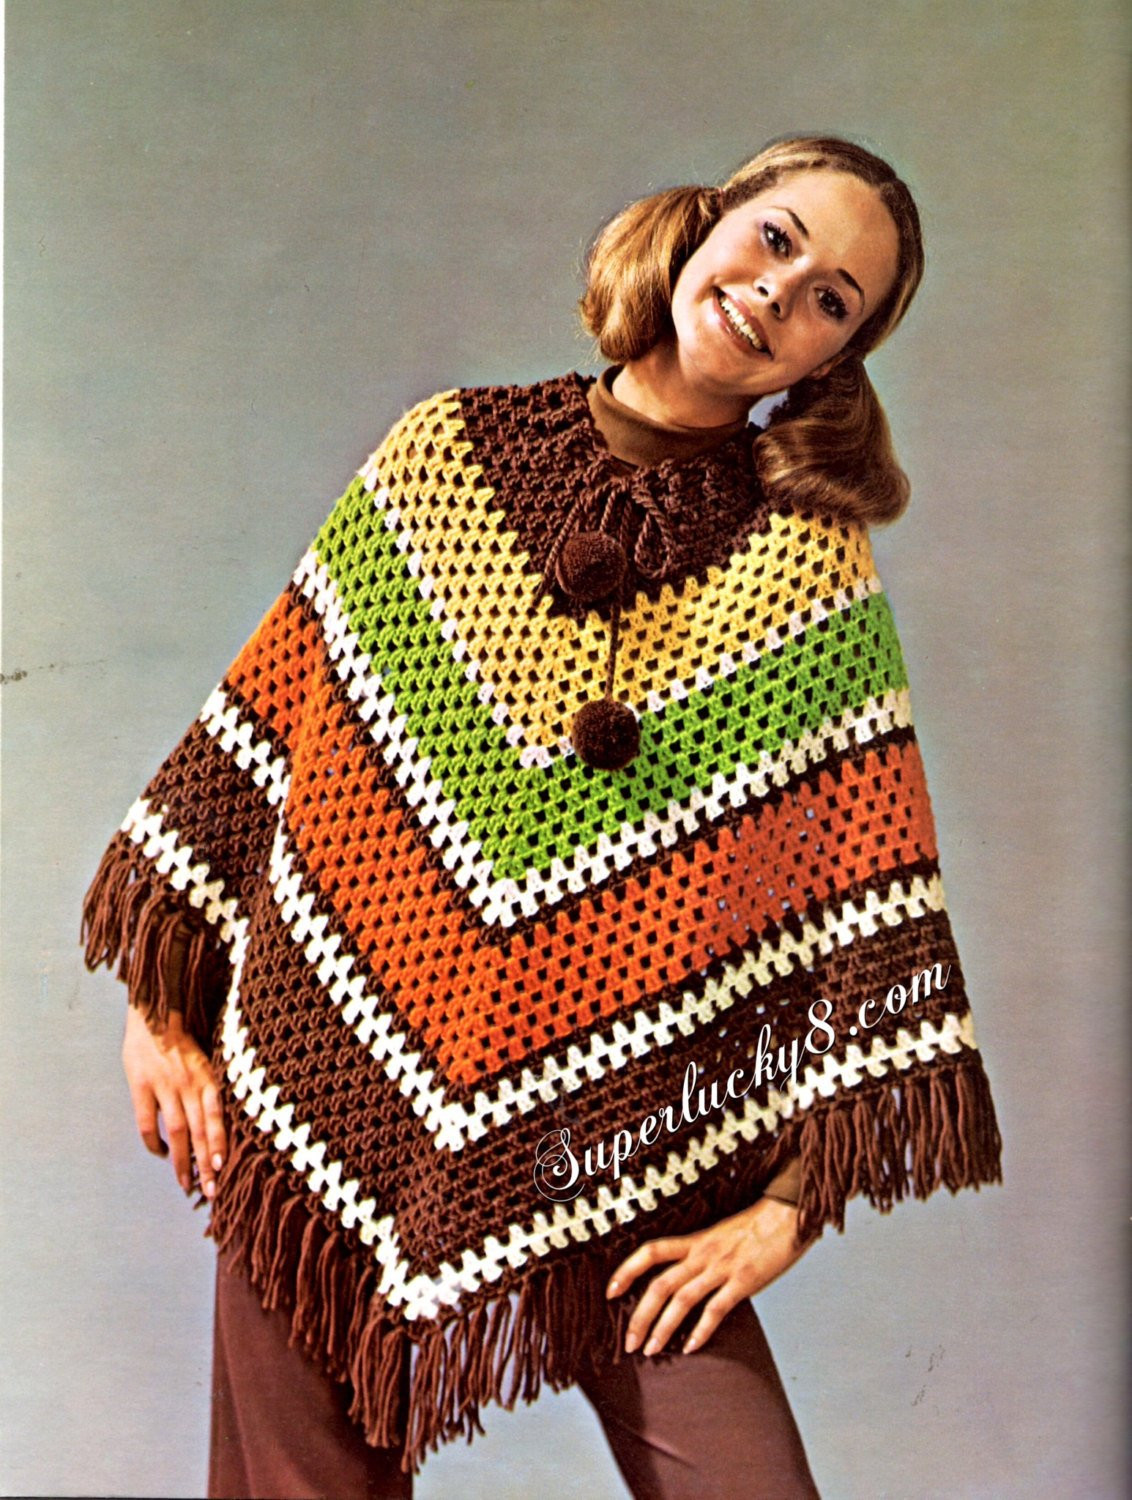 Free Crochet Poncho Patterns Awesome Free Crochet Poncho Patterns to Download Dancox for Of Wonderful 50 Images Free Crochet Poncho Patterns